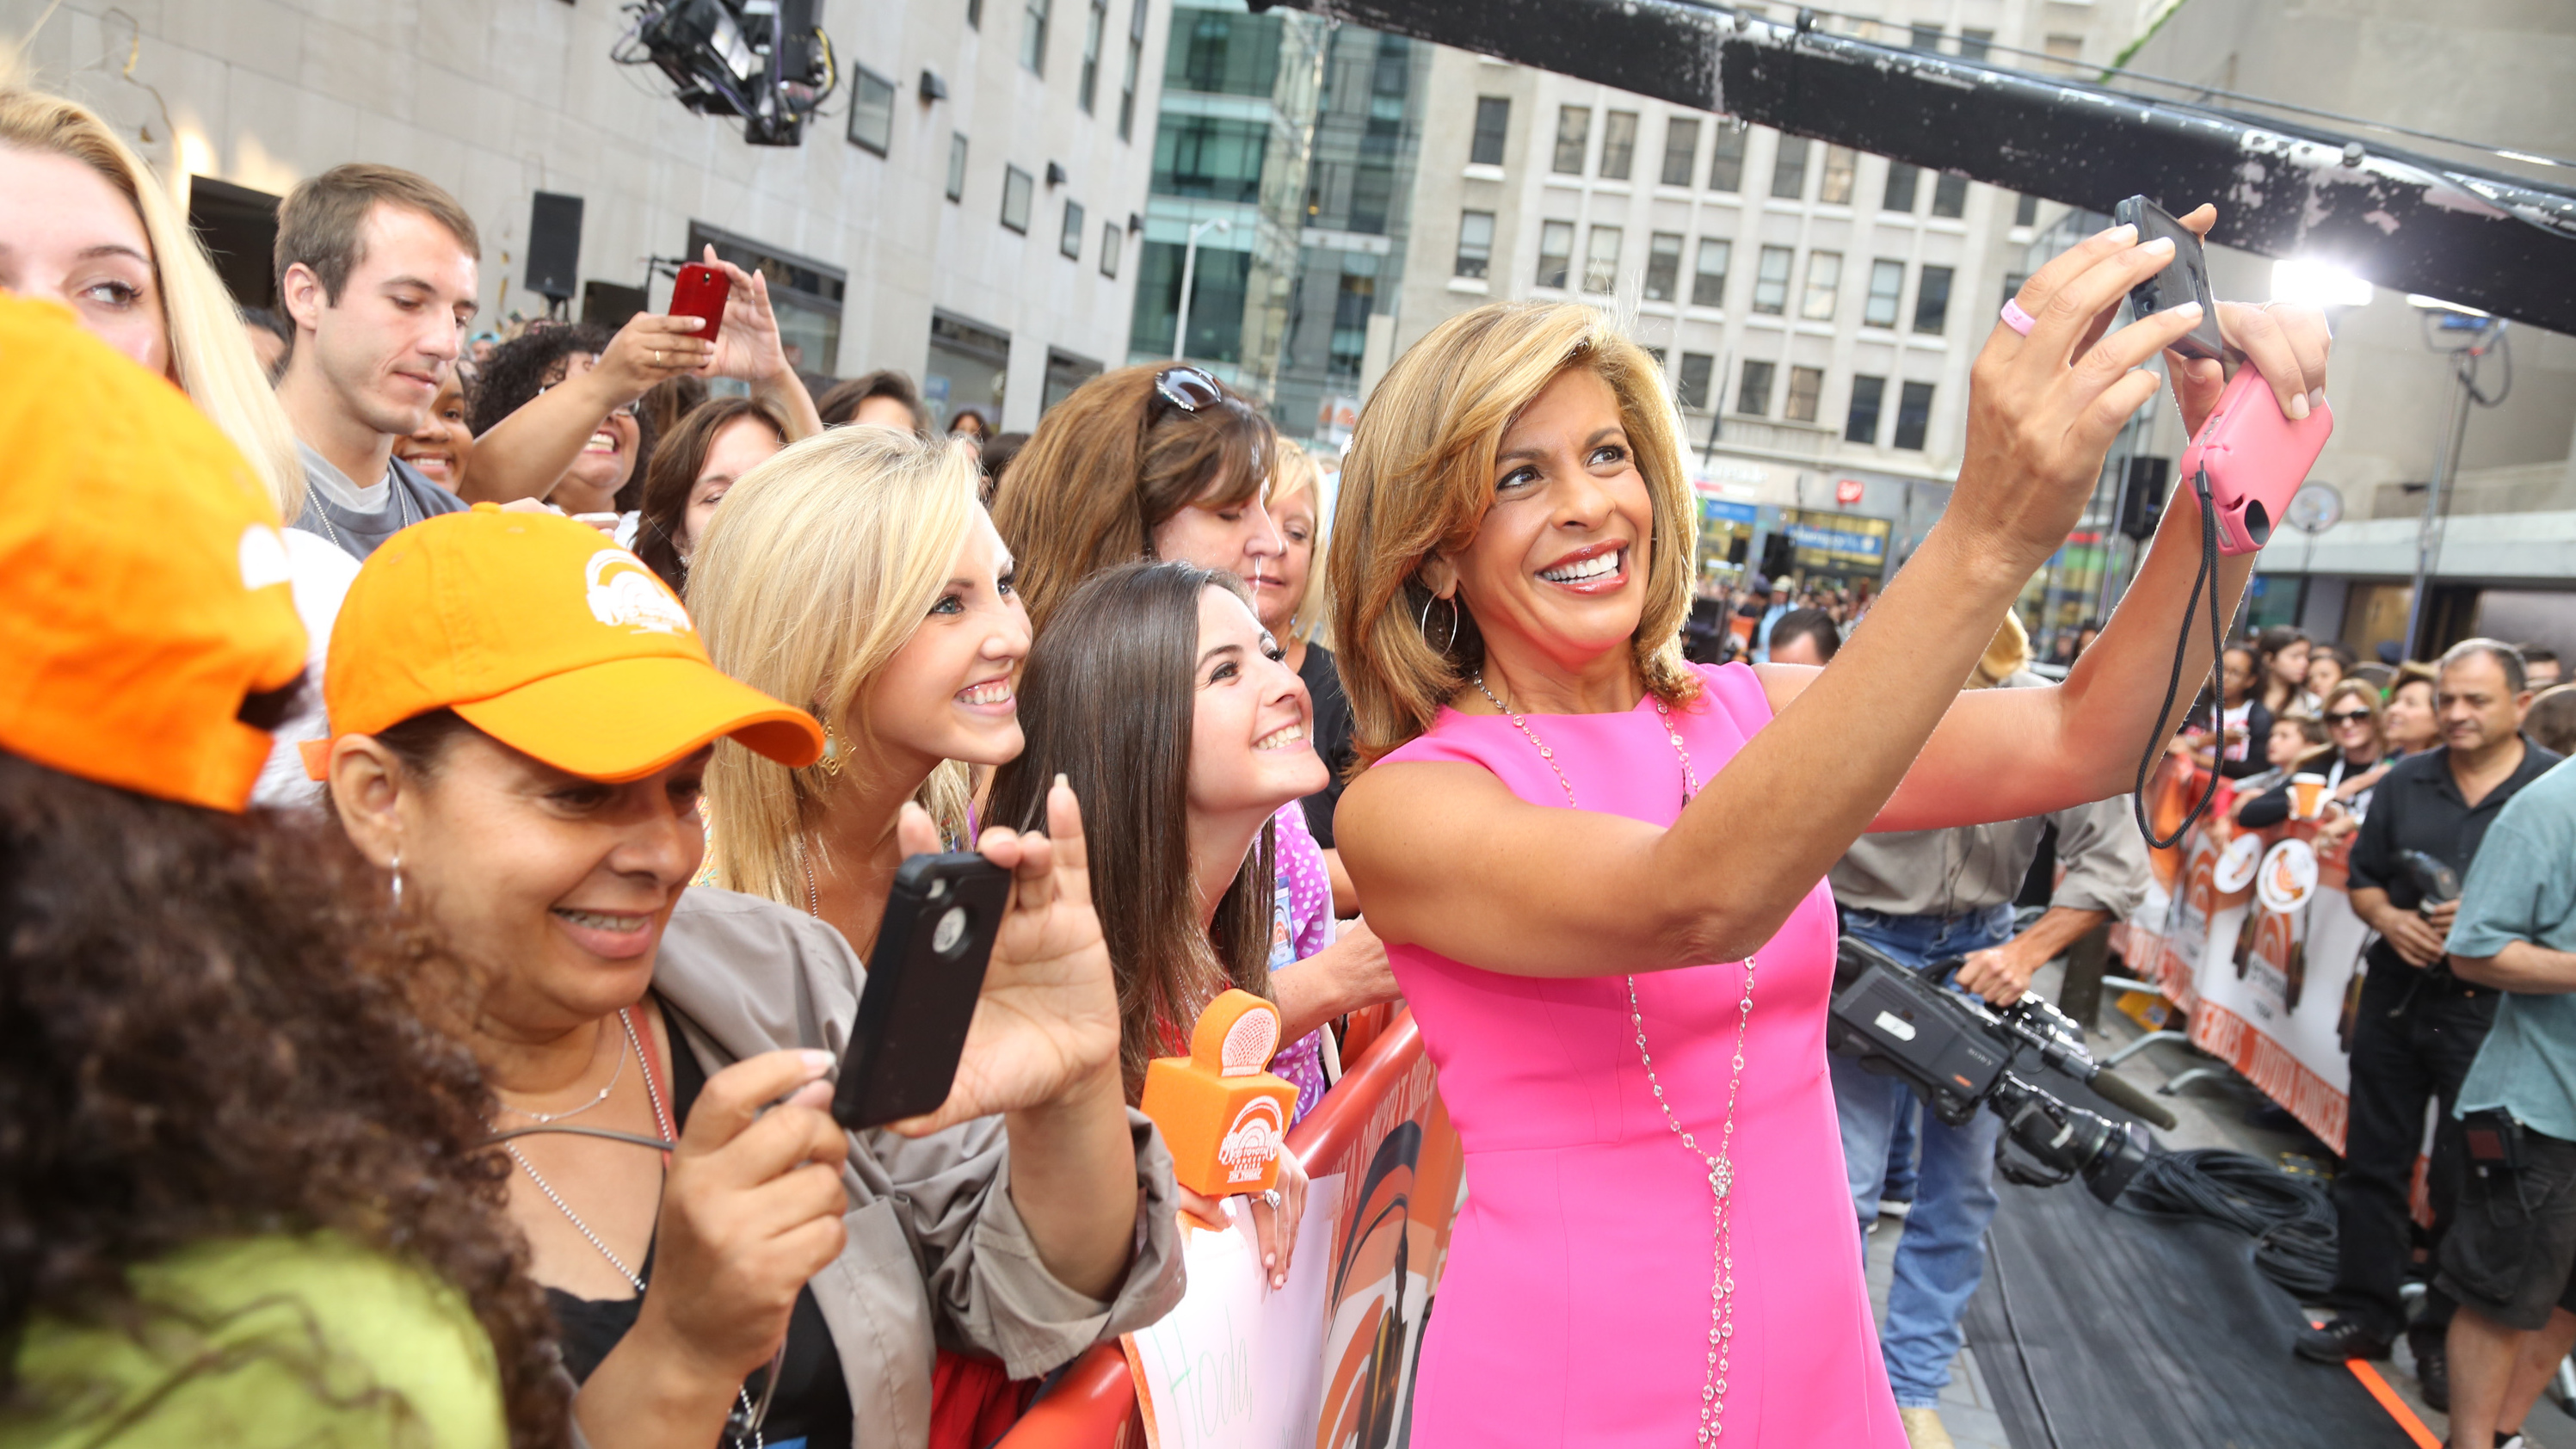 Hoda Kotb poses with guests outside of the Today show studios in 2014. Kotb has just been named co-anchor of the show, replacing longtime co-anchor Matt Lauer.